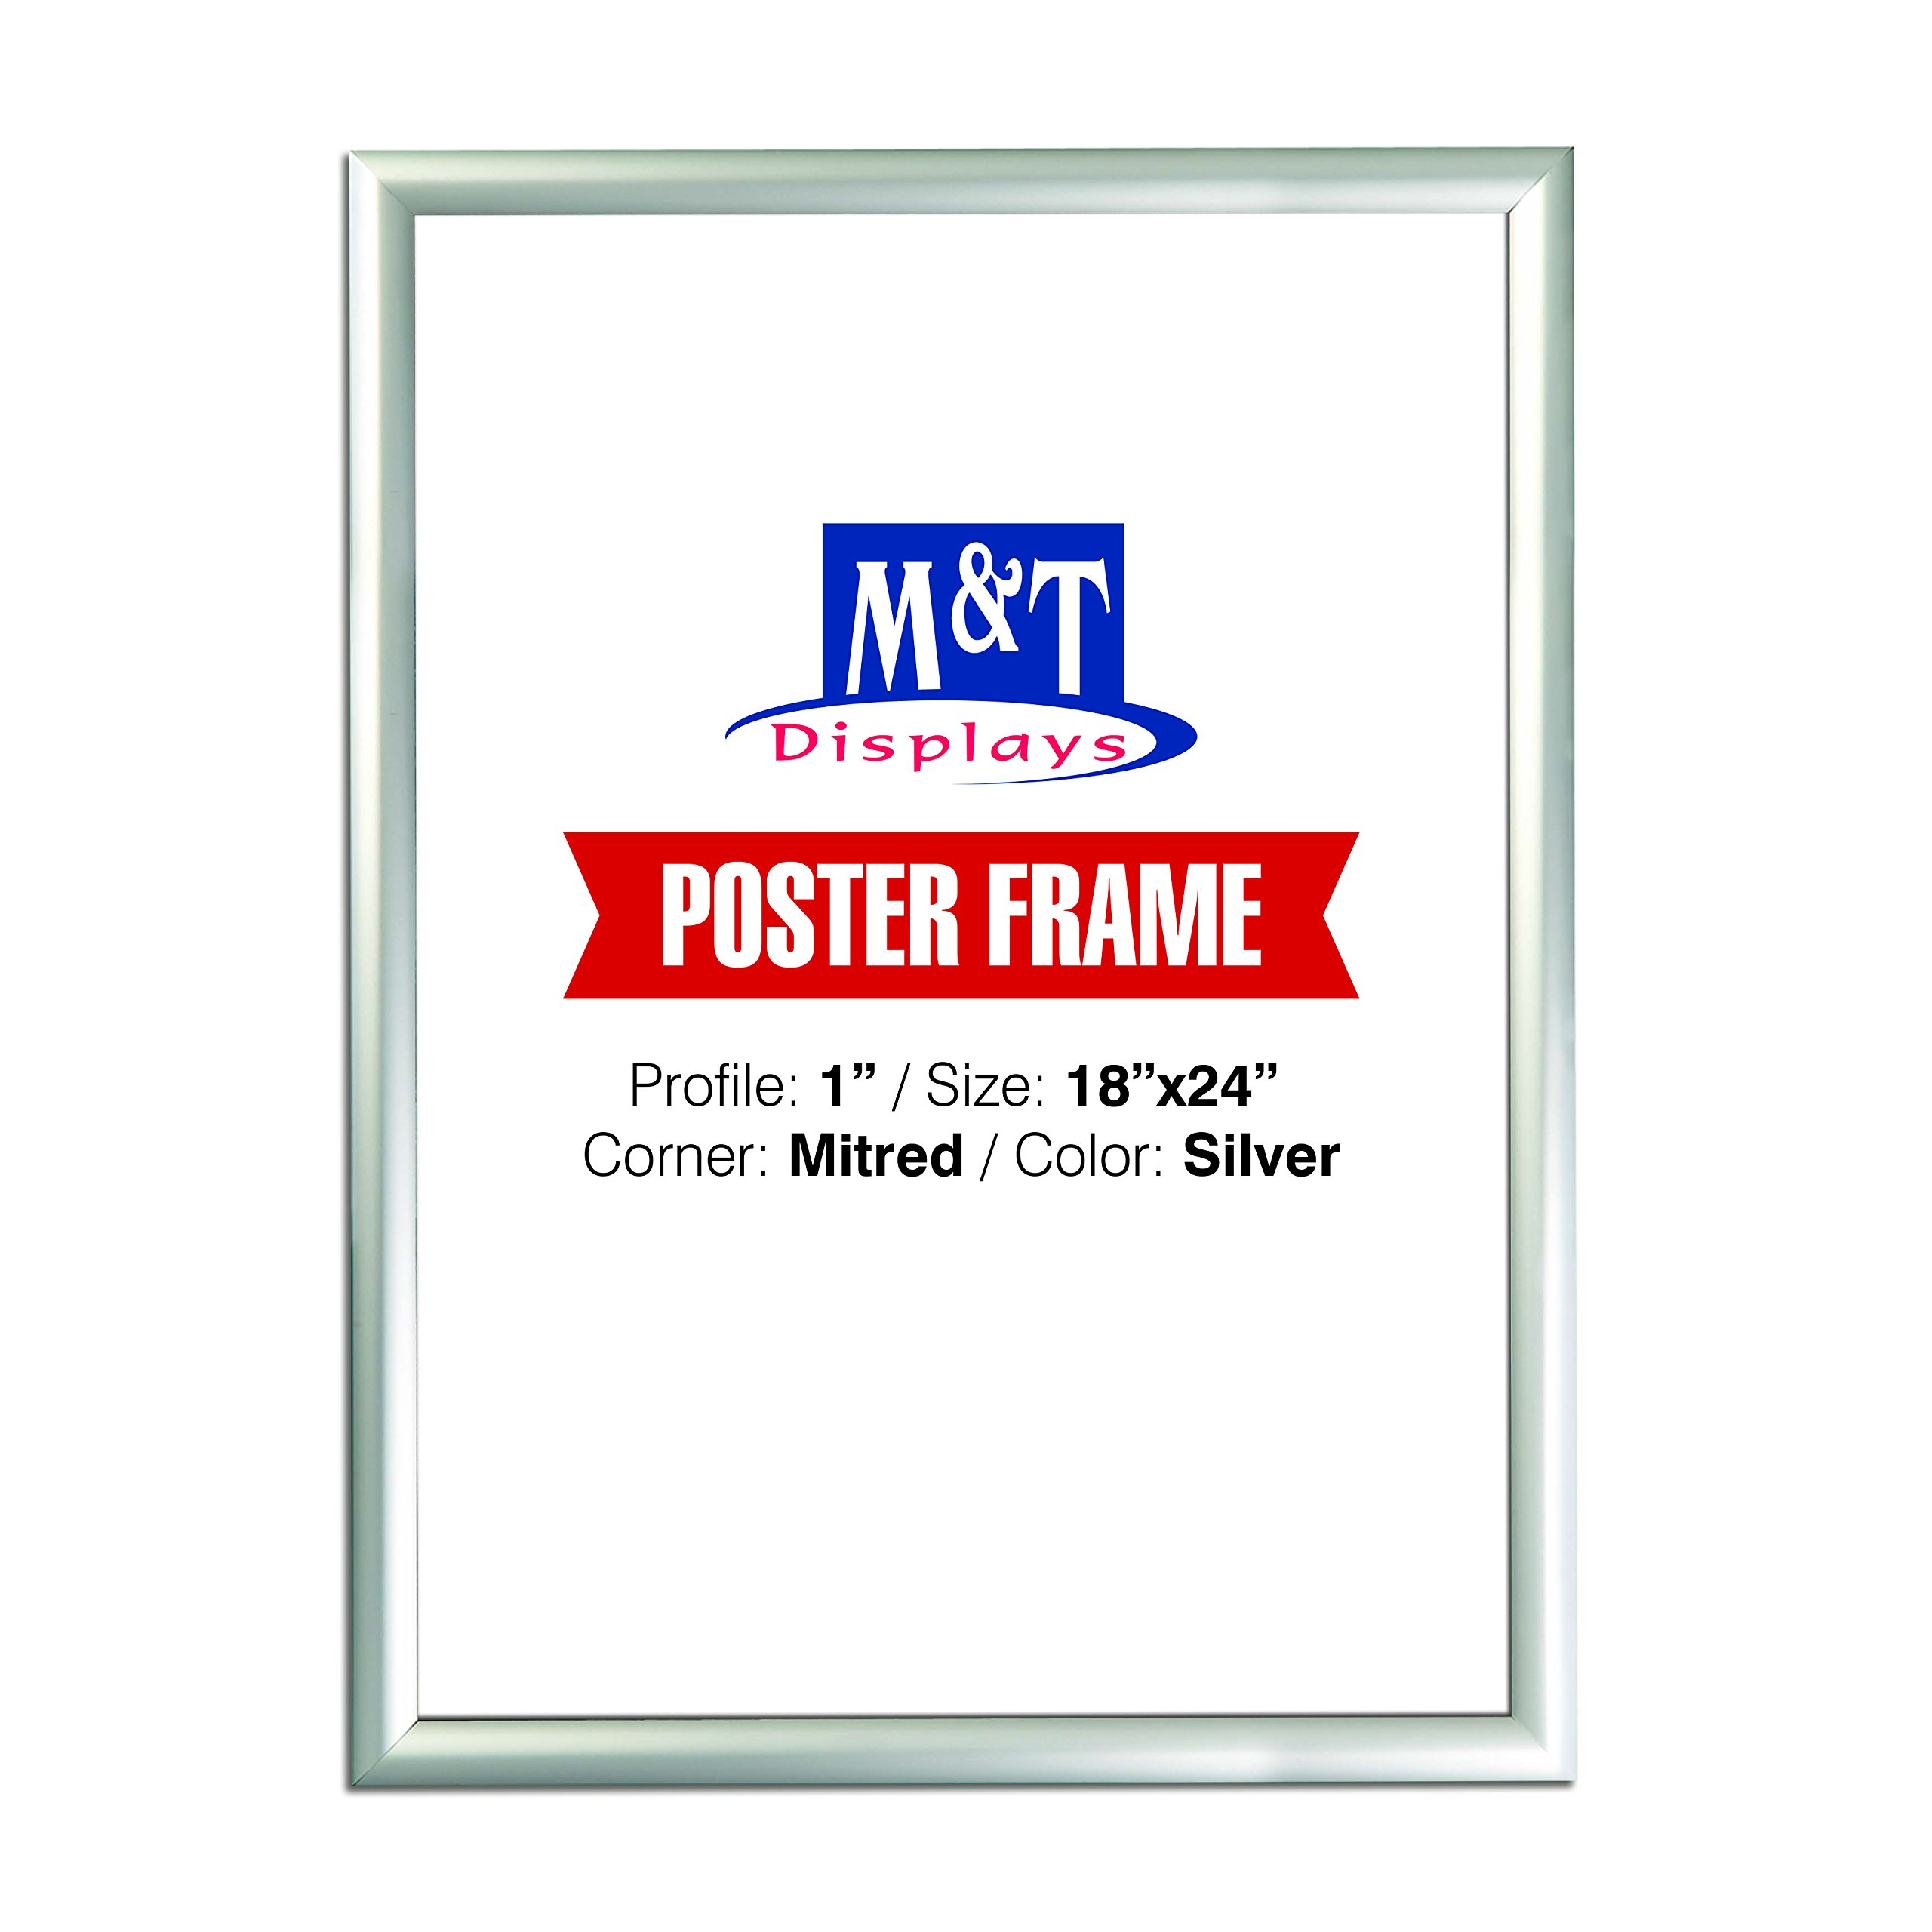 Snap Frame 18 X 24 Inch, Poster Size 1 Inch, Silver Color Profile, Mitred Corner